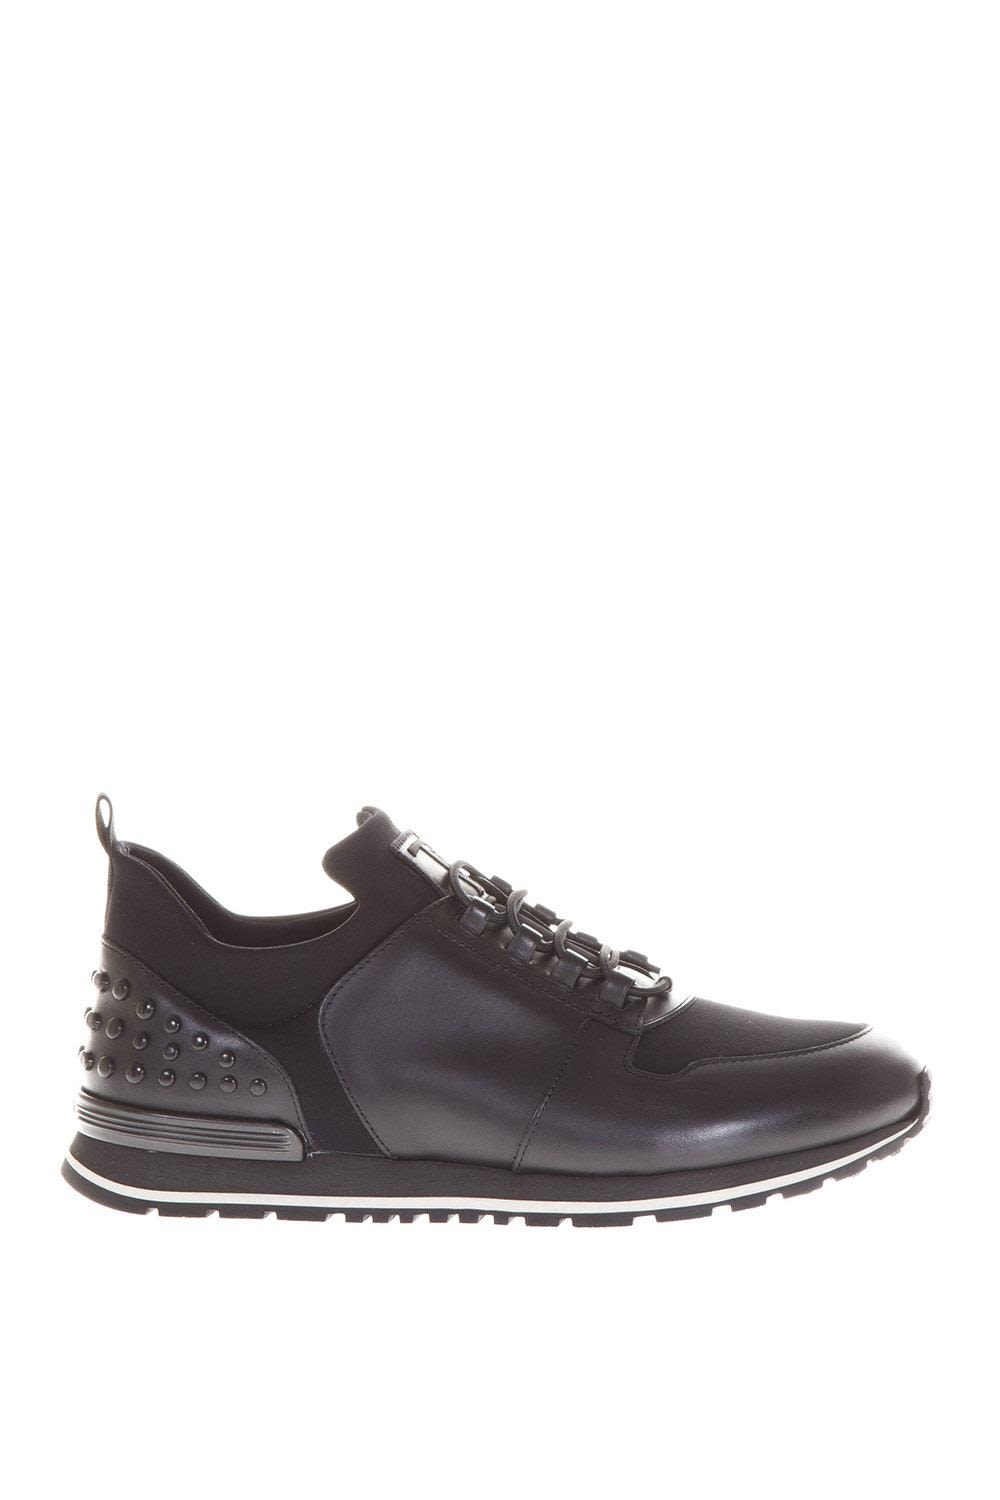 Tods Neoprene & Leather Sneakers